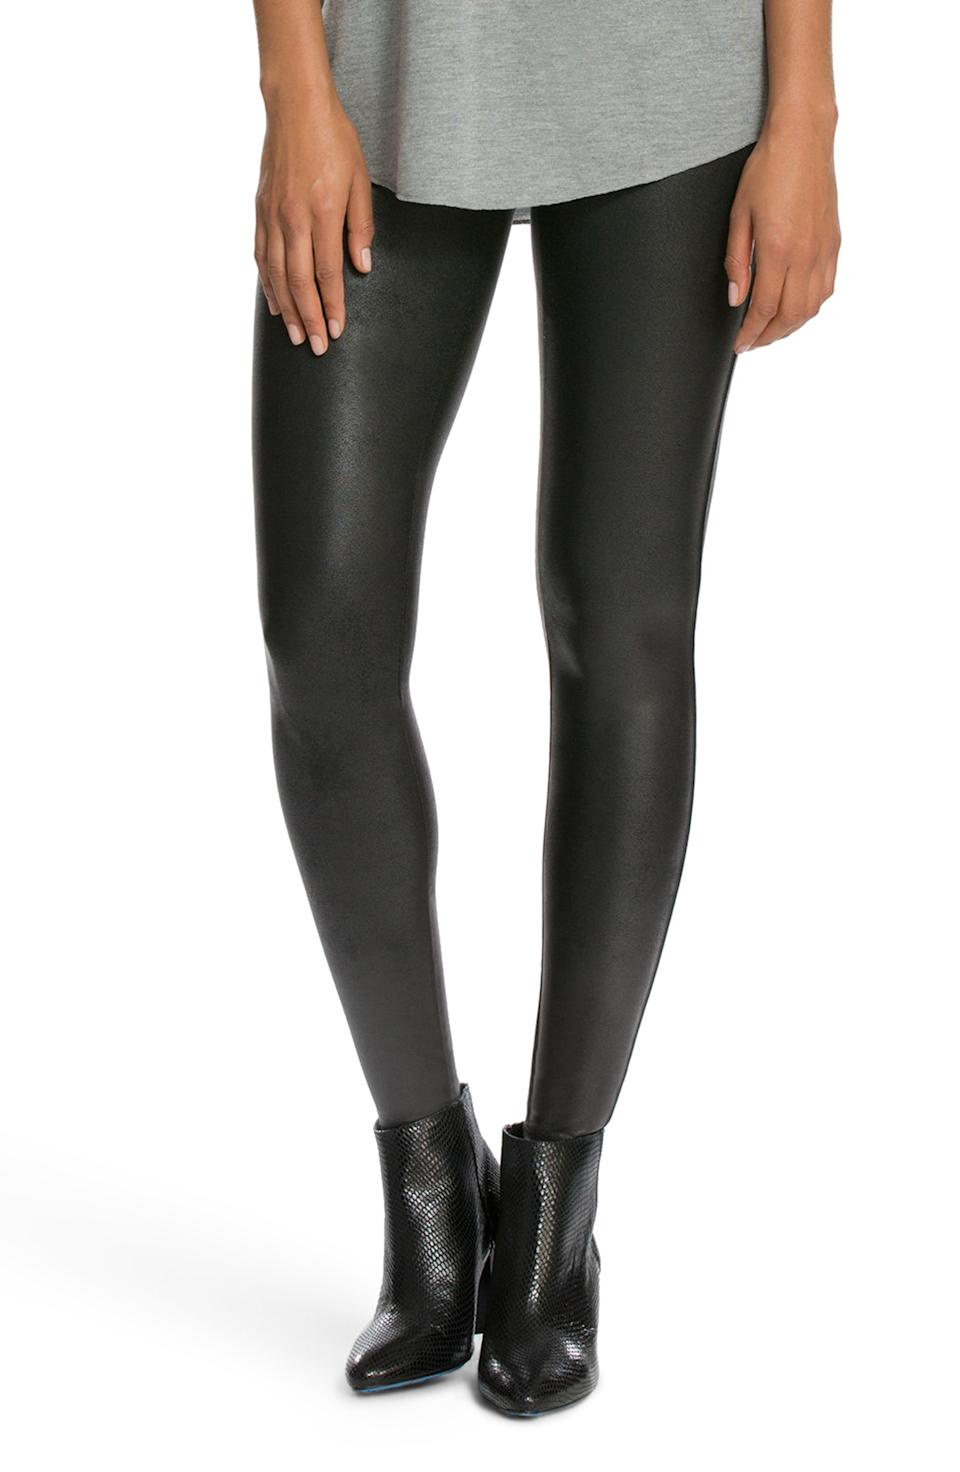 Spanx Faux Leather Leggings. Image via Nordstrom.